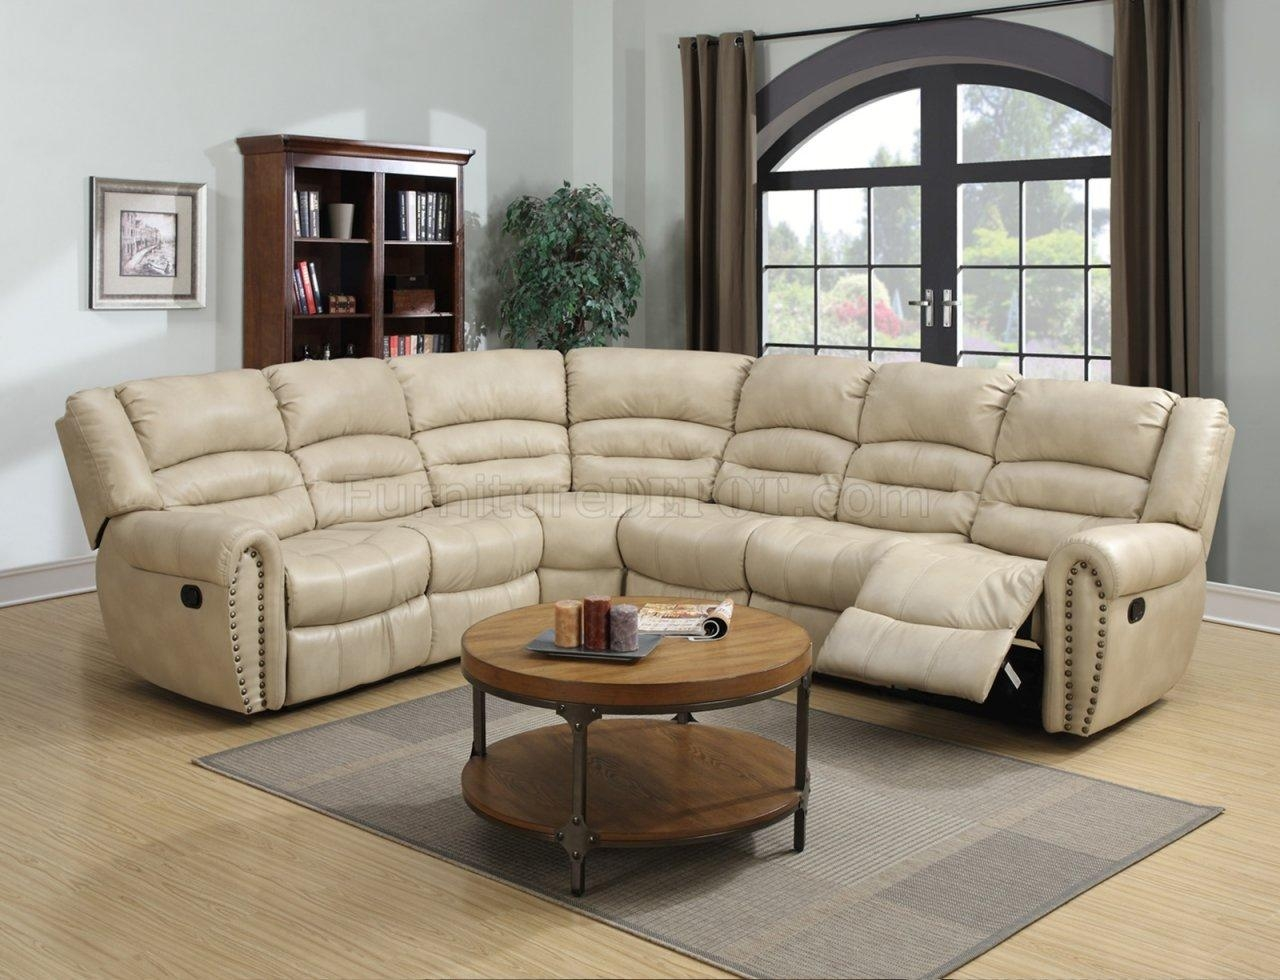 G687 Motion Sectional Sofa In Beige Bonded Leatherglory Within Motion Sectional Sofas (Image 8 of 20)